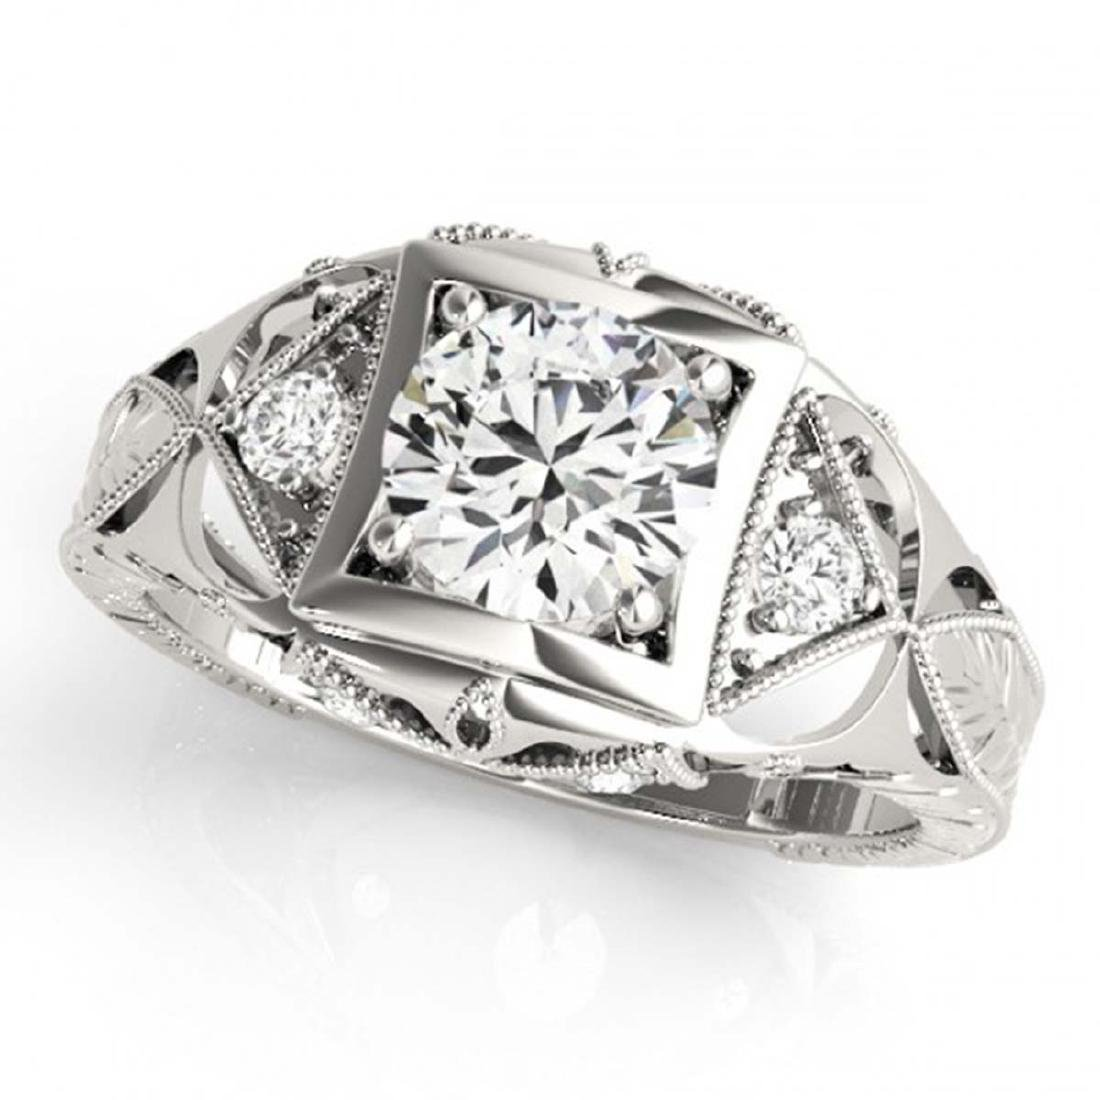 0.60 ctw VS/SI Diamond Ring 18K White Gold - REF-99K2W - 2